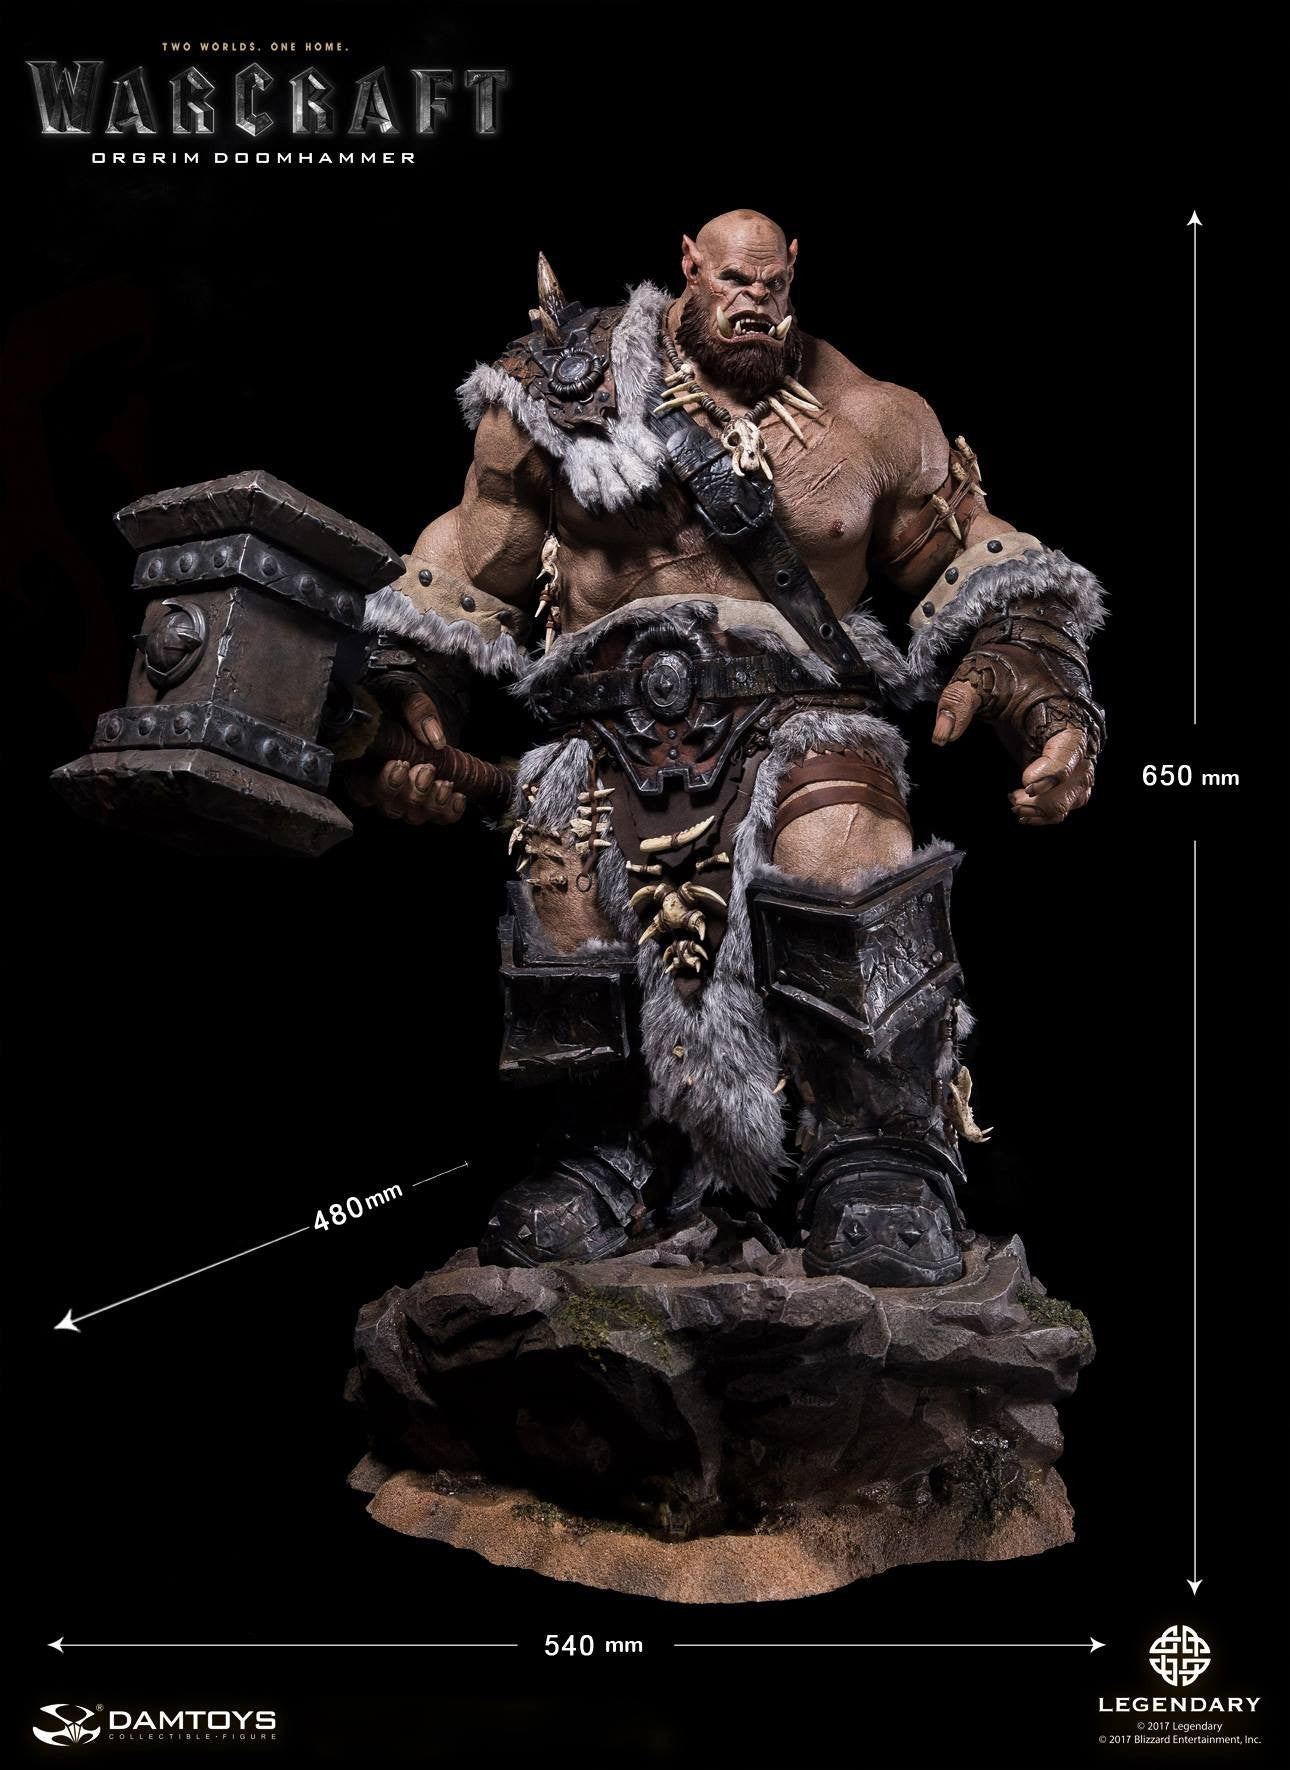 Dam Toys - DMLW02 - Epic Series - Warcraft - Orgrim Doomhammer Premium Statue - Marvelous Toys - 22